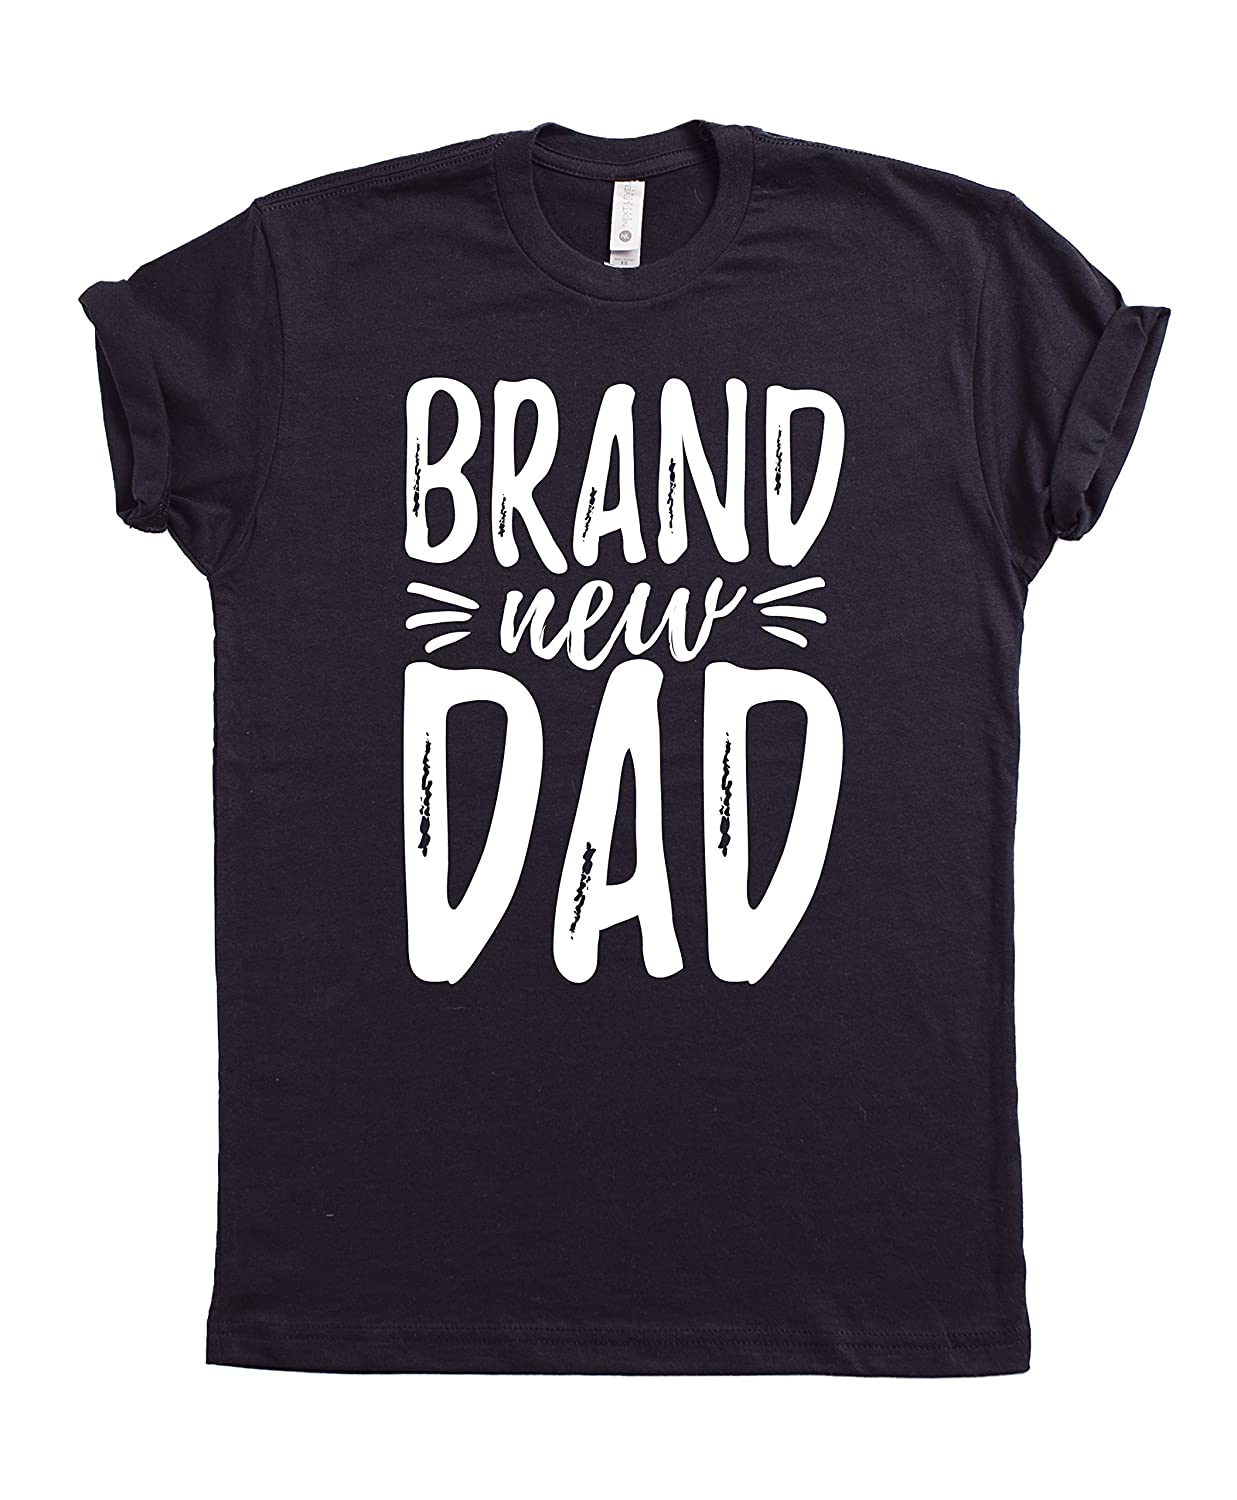 c53b44cf Brand New Dad T-shirt, Fathers Day T-shirt, Daddy's Day Tee, Father's day Gift  Ideas, Fathers Day Presents,Best Father's Gifts, New Dads Gift, First Time  ...